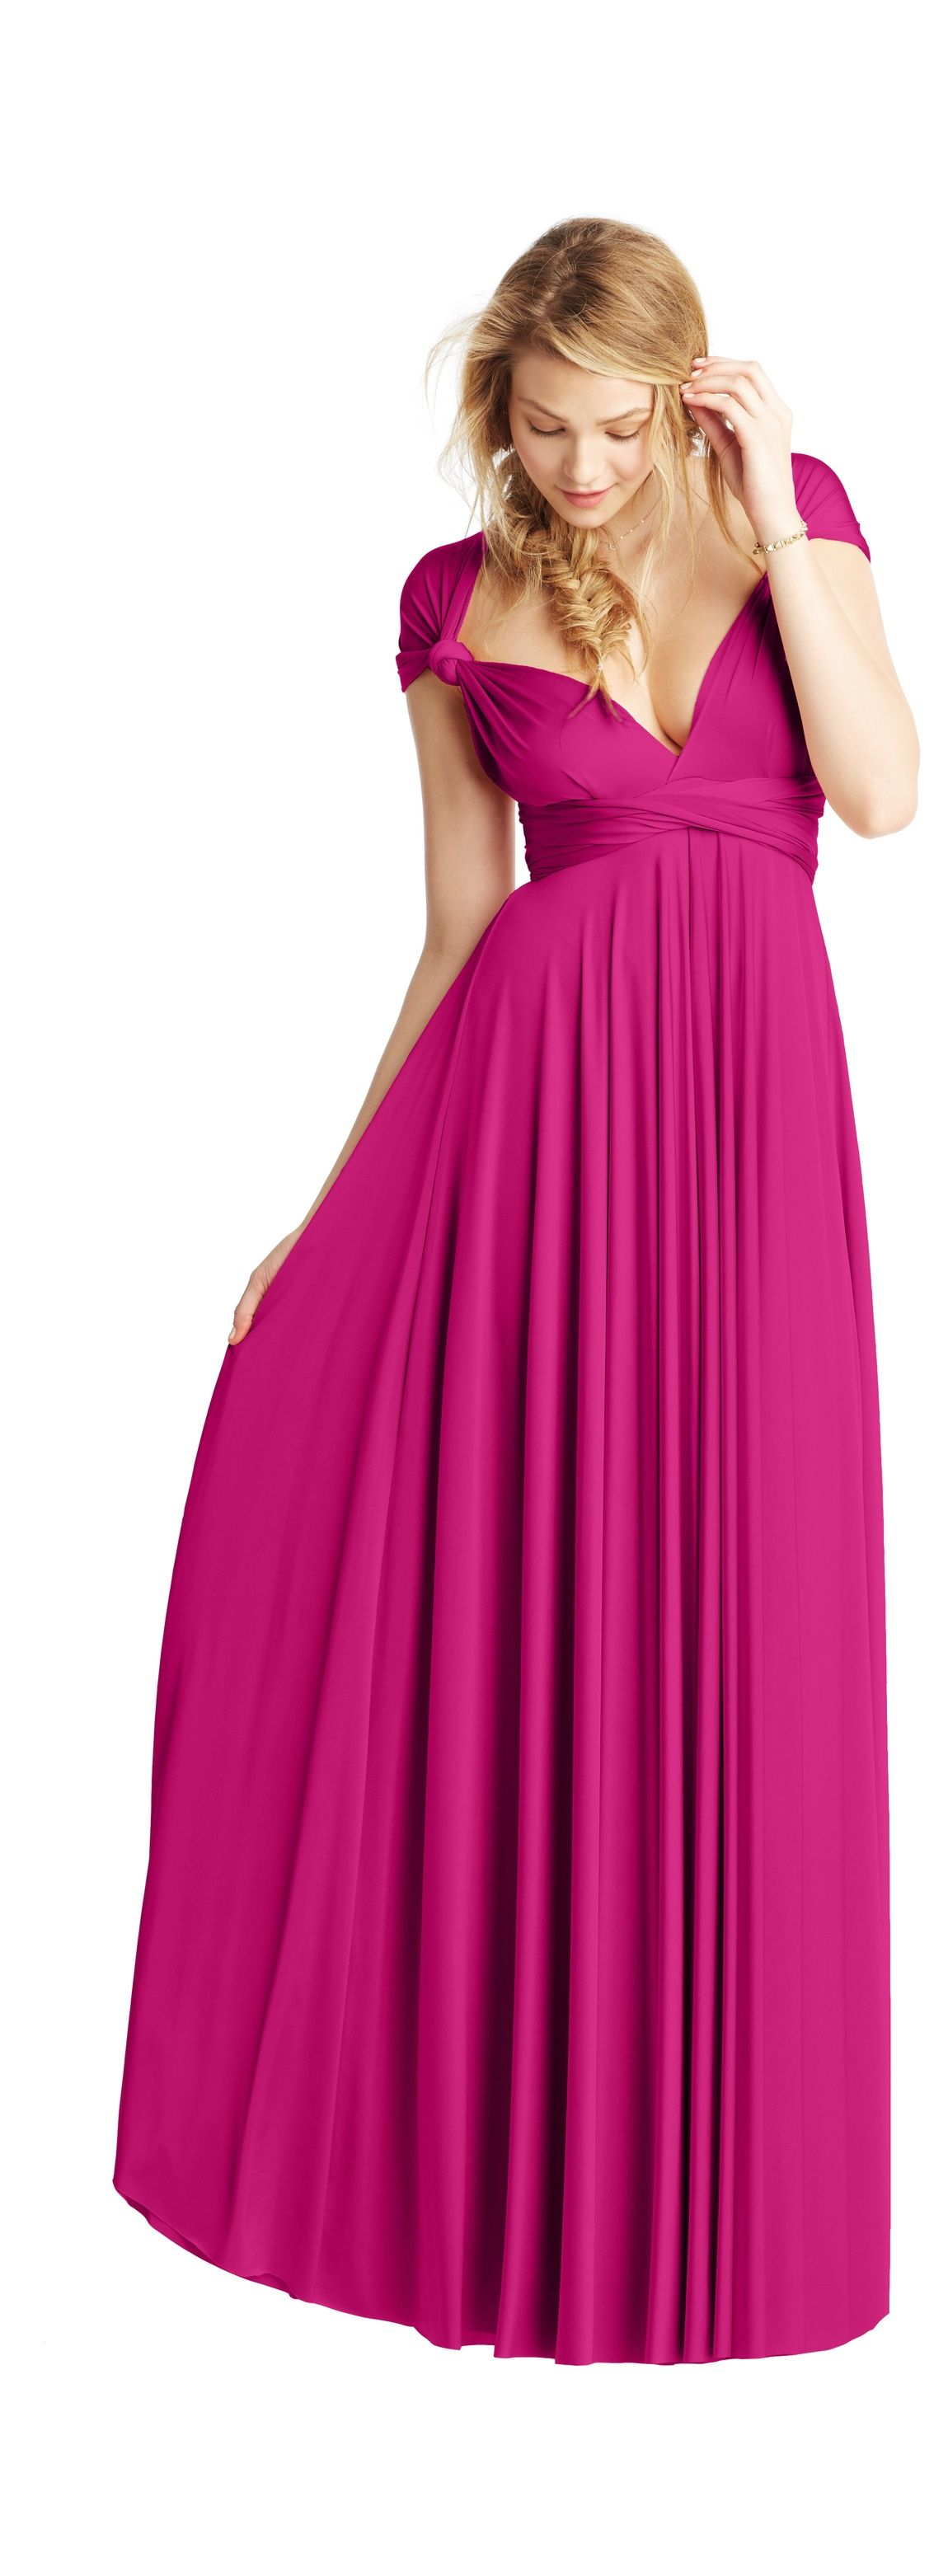 Looking for Red Bridesmaid Dresses? Plenty of Red Bridesmaid ...